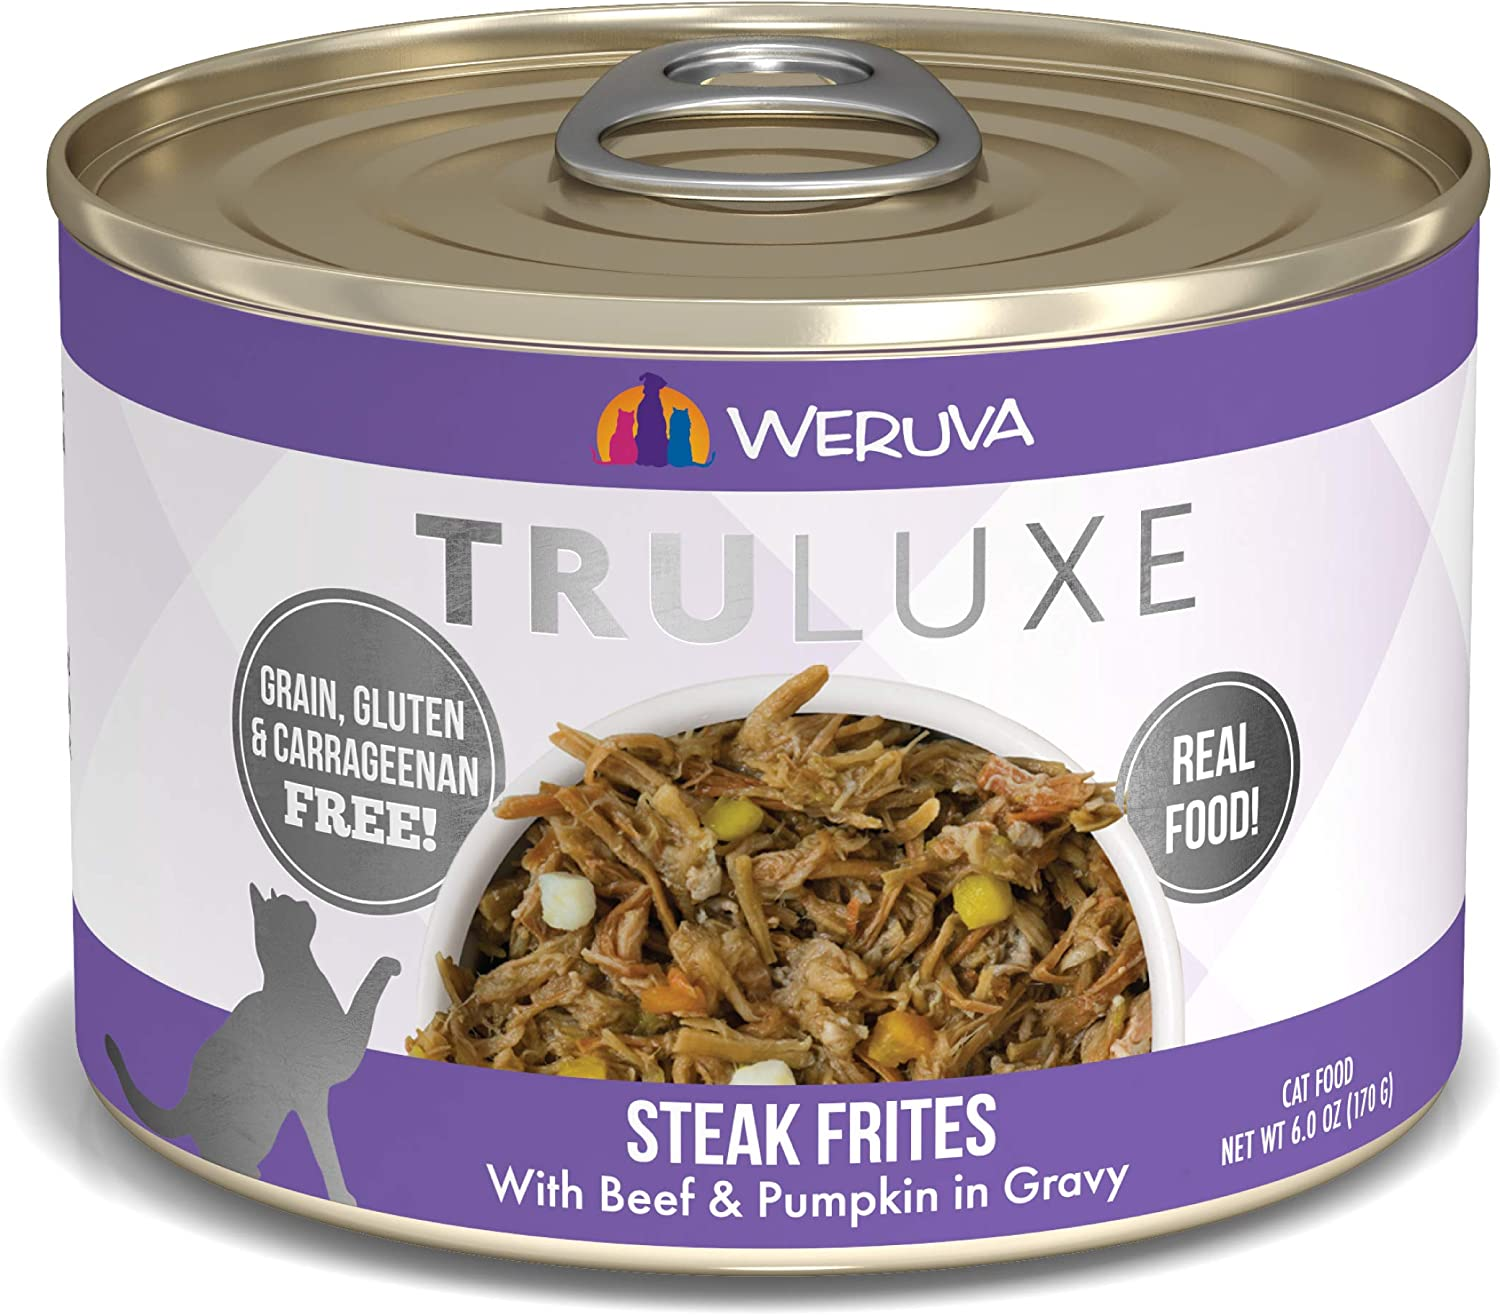 Weruva 878408003318 Steak Frites Single Canned Cat Food (24 Pack), 6 oz